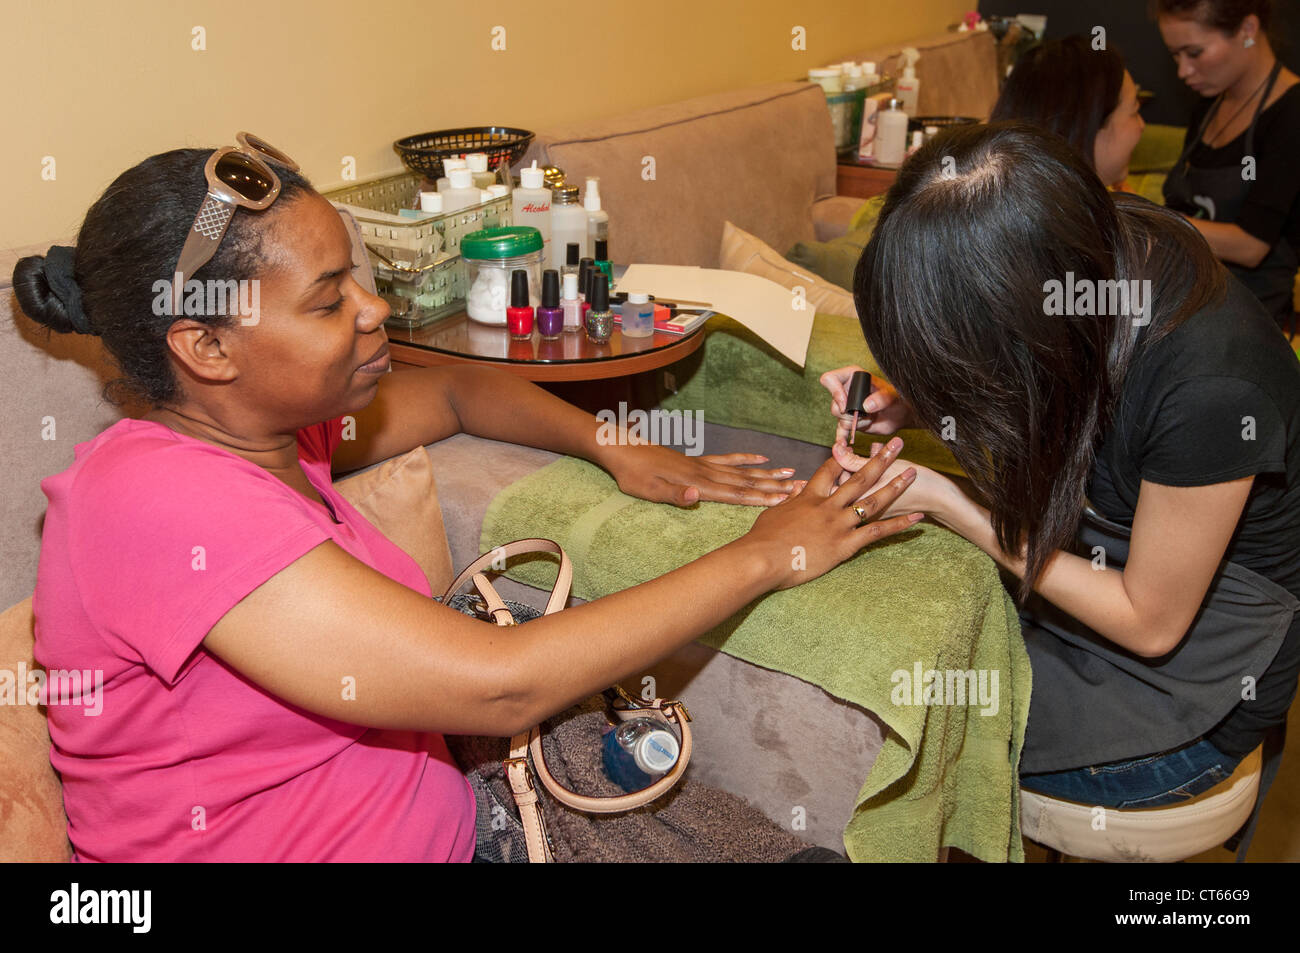 Women getting their nails done at a spa and salon. - Stock Image